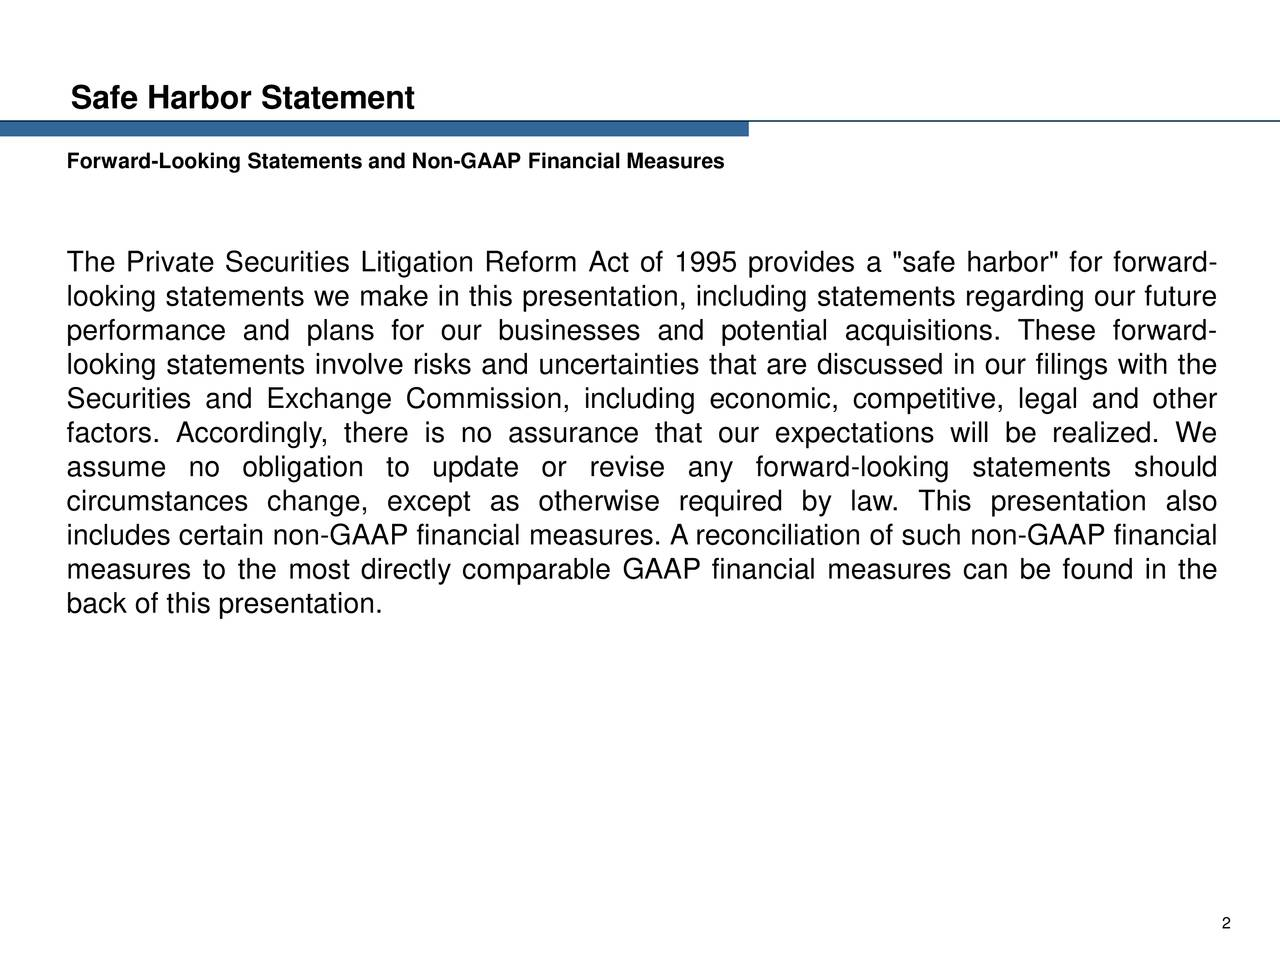 "Forward-Looking Statements and Non-GAAP Financial Measures The Private Securities Litigation Reform Act of 1995 provides a ""safe harbor"" for forward- looking statements we make in this presentation, including statements regarding our future performance and plans for our businesses and potential acquisitions. These forward- looking statements involve risks and uncertainties that are discussed in our filings with the Securities and Exchange Commission, including economic, competitive, legal and other factors. Accordingly, there is no assurance that our expectations will be realized. We assume no obligation to update or revise any forward-looking statements should circumstances change, except as otherwise required by law. This presentation also includes certain non-GAAP financial measures. A reconciliation of such non-GAAP financial measures to the most directly comparable GAAP financial measures can be found in the back of this presentation. 2"